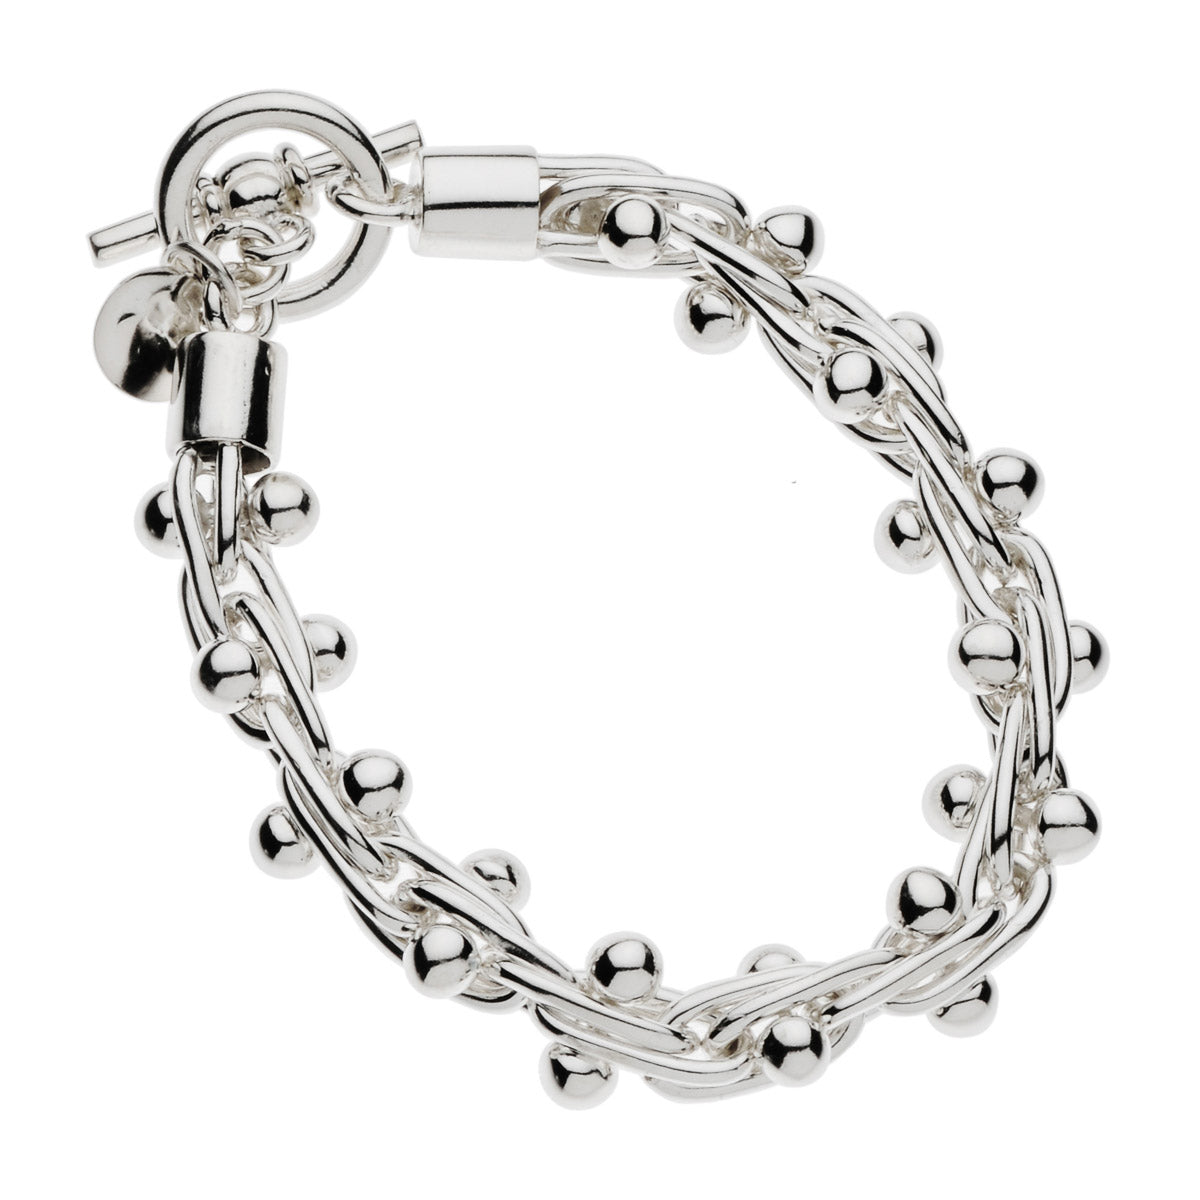 Big Spratling Bracelet